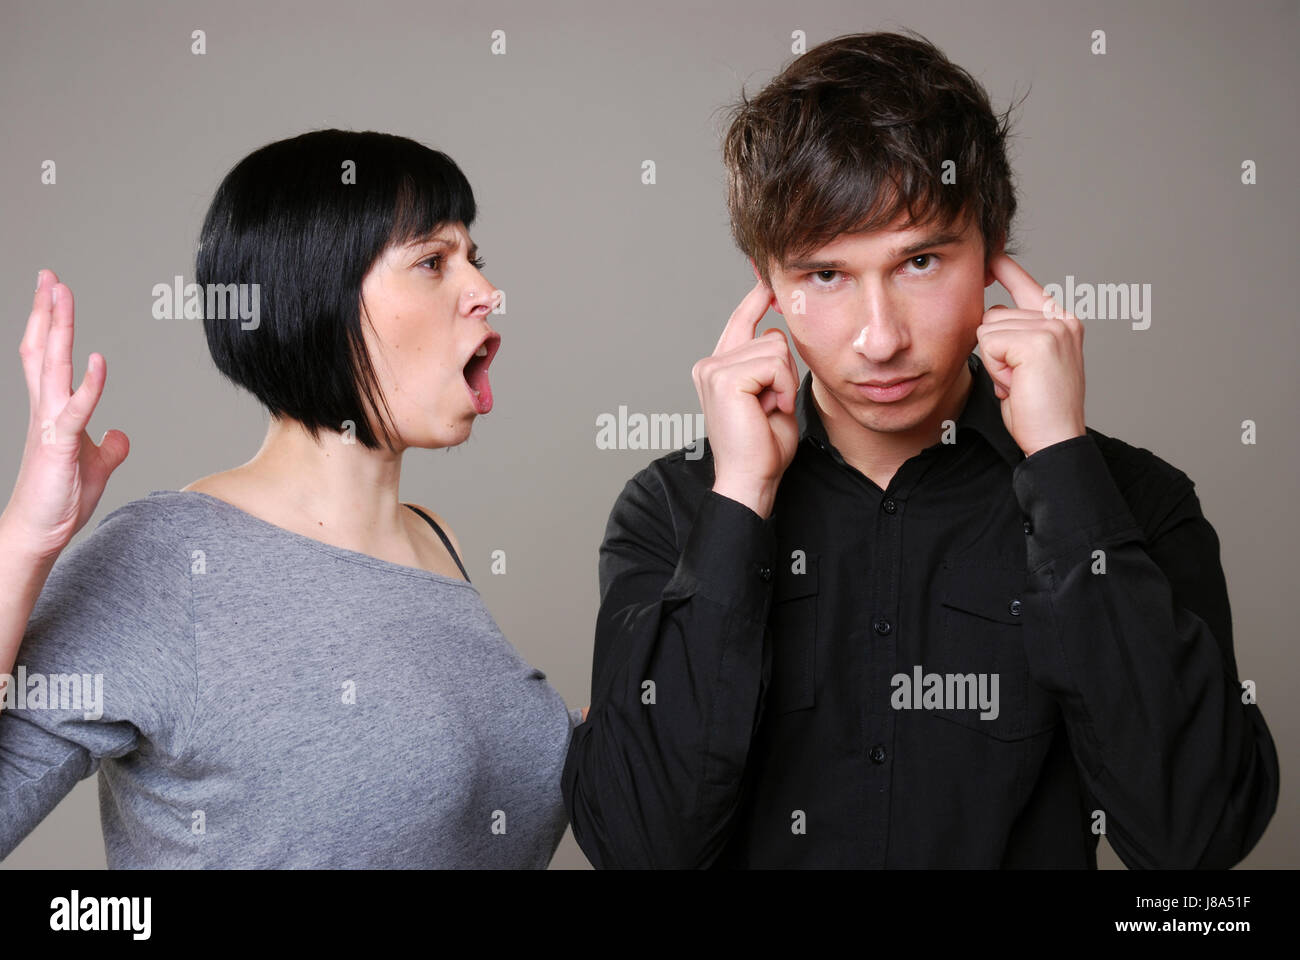 conflict, argue, problem, love, in love, fell in love, stress, couple, pair, Stock Photo